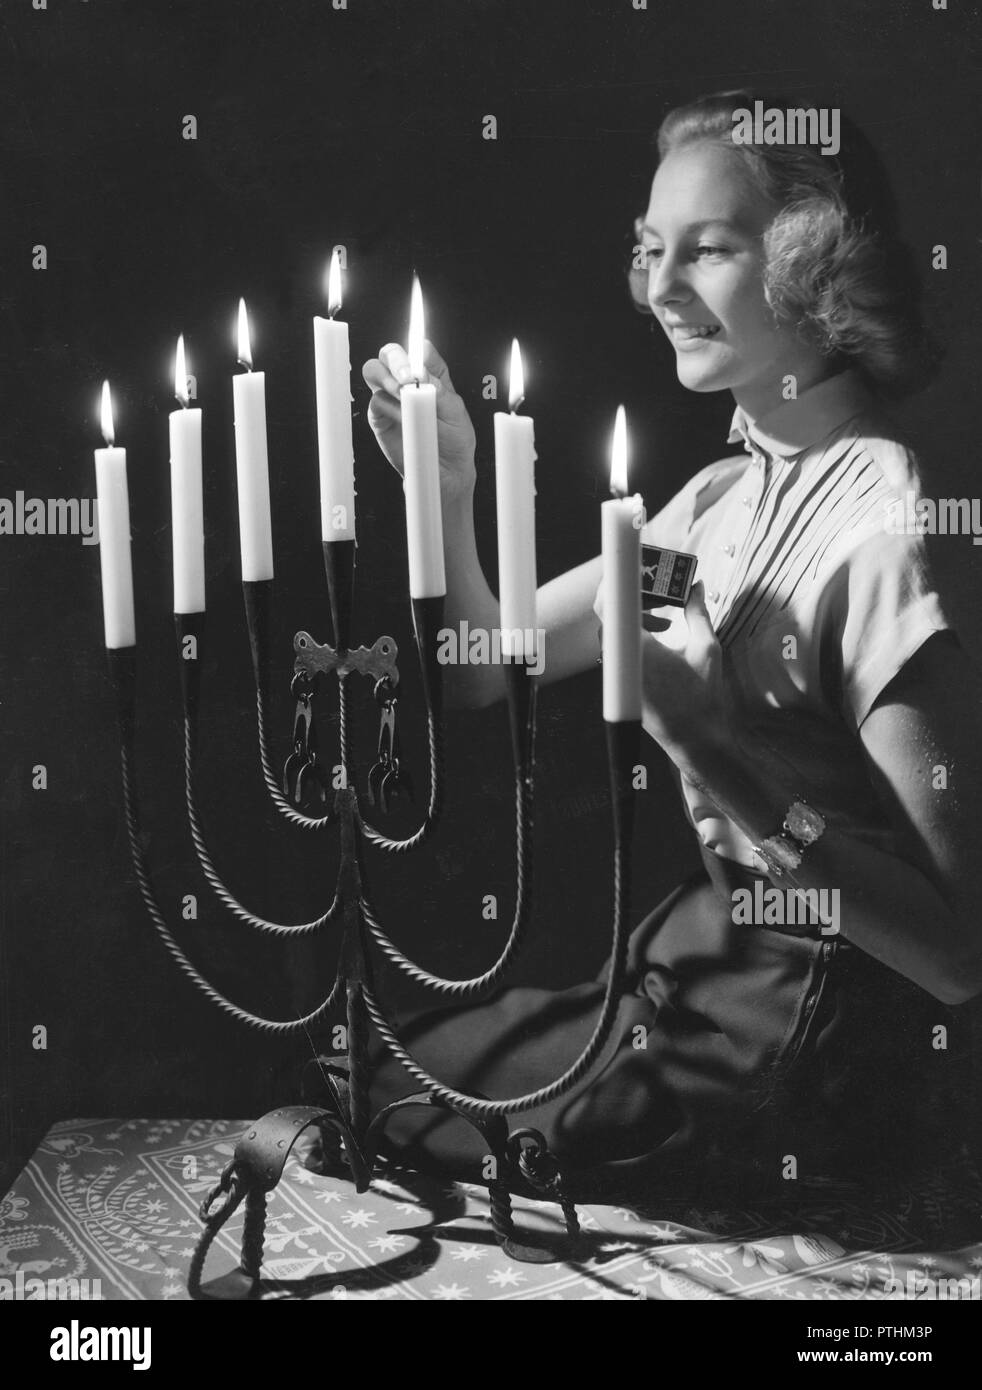 Christmas in the 1940s. Margit Sjödin is lighting the candles at christmas. Sweden 1940s - Stock Image